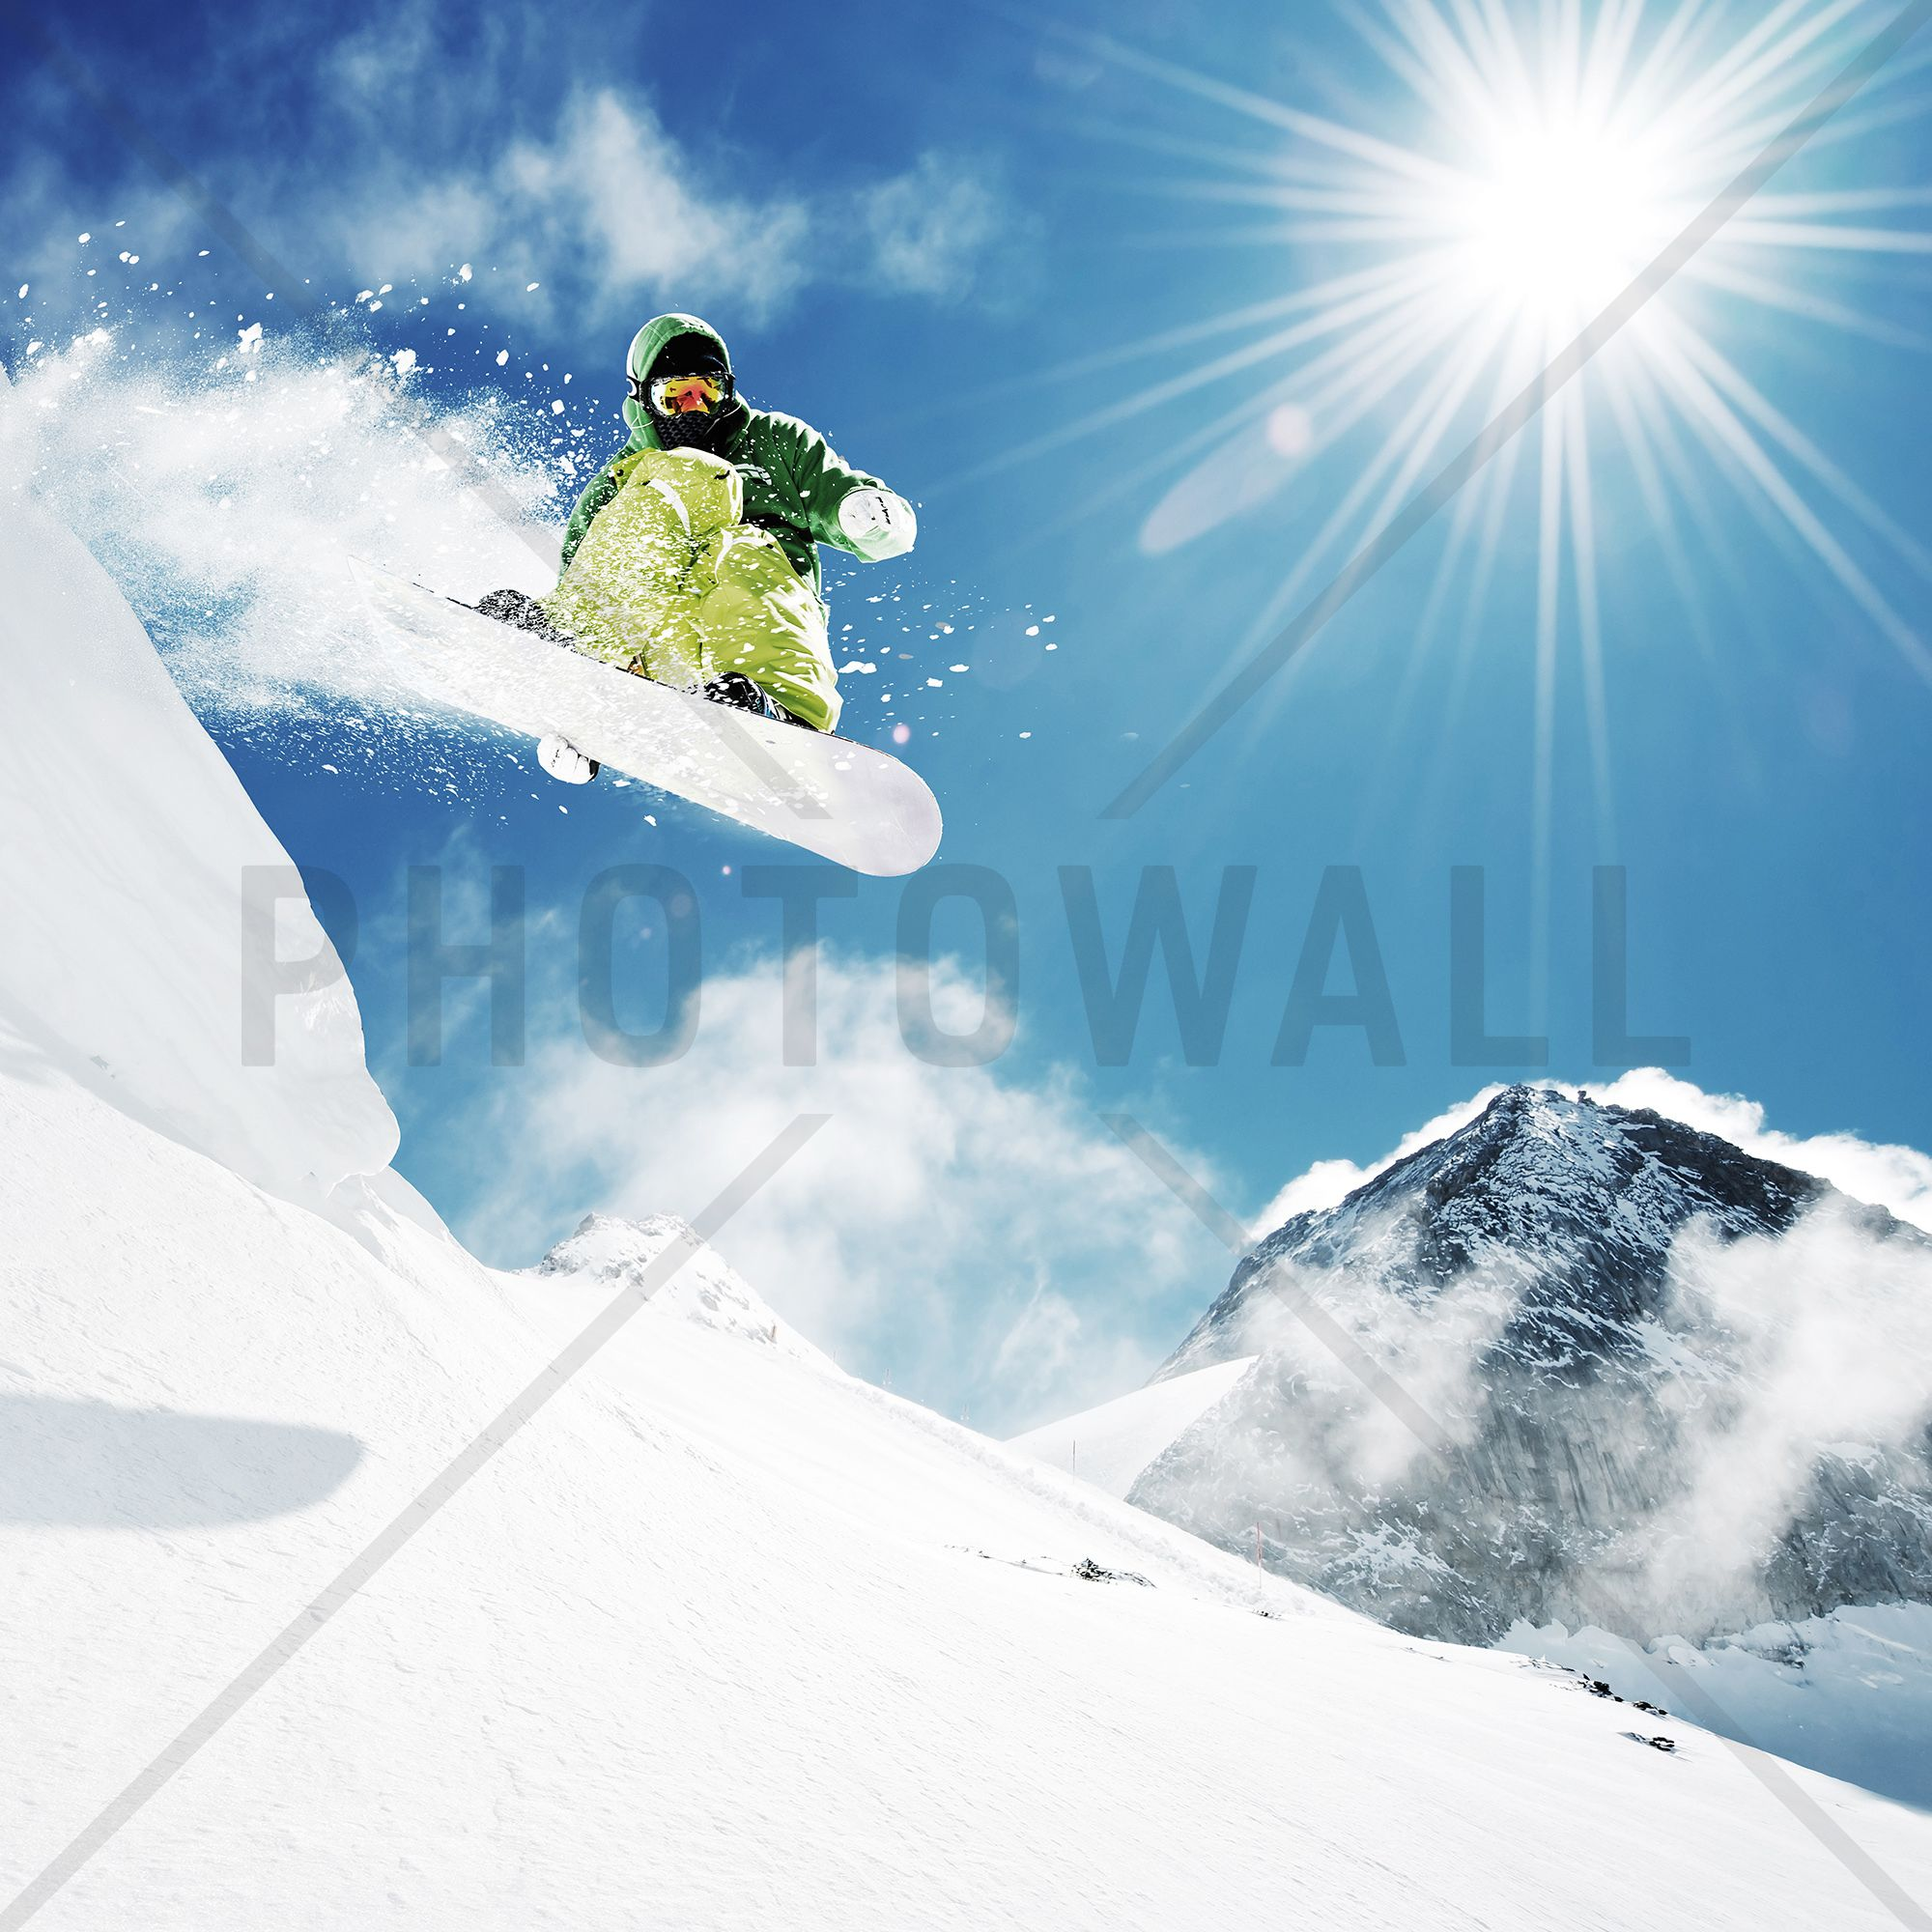 Snowboarder at jump wall mural photo wallpaper photowall snowboarder at jump wall mural photo wallpaper photowall amipublicfo Image collections